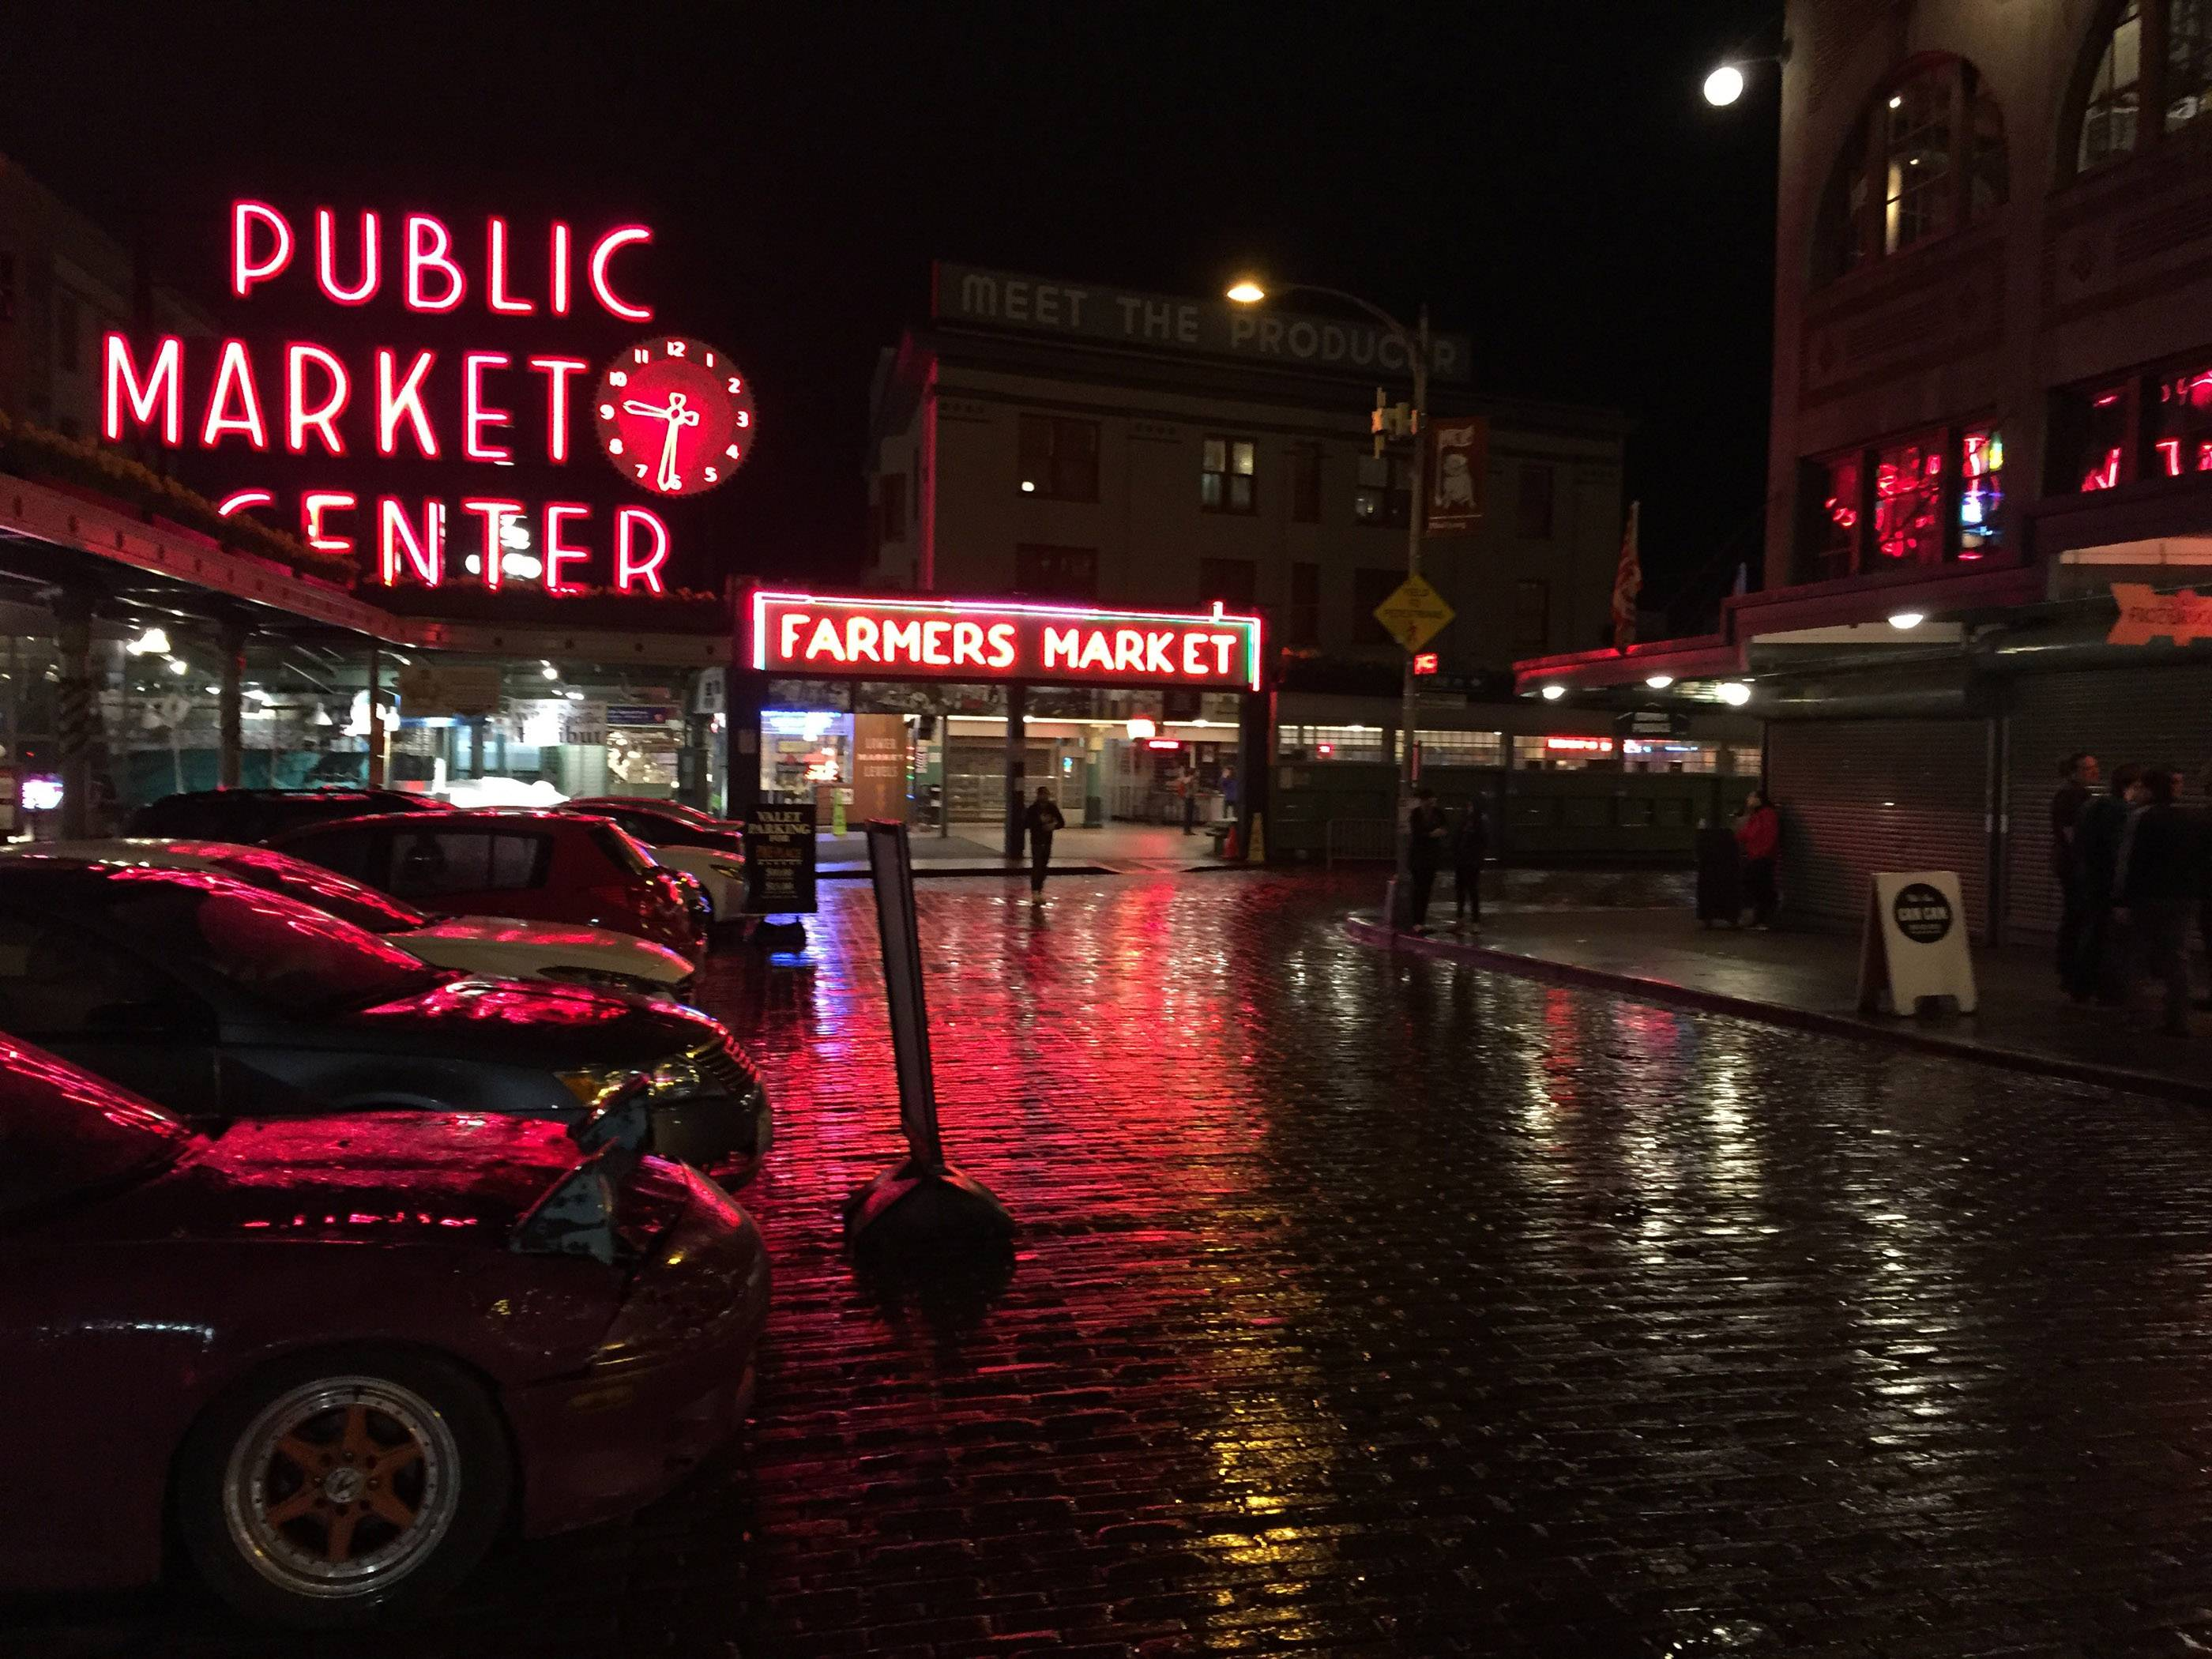 Seattle's Public Market, commonly called Pike Street Market, after the main street of entry.